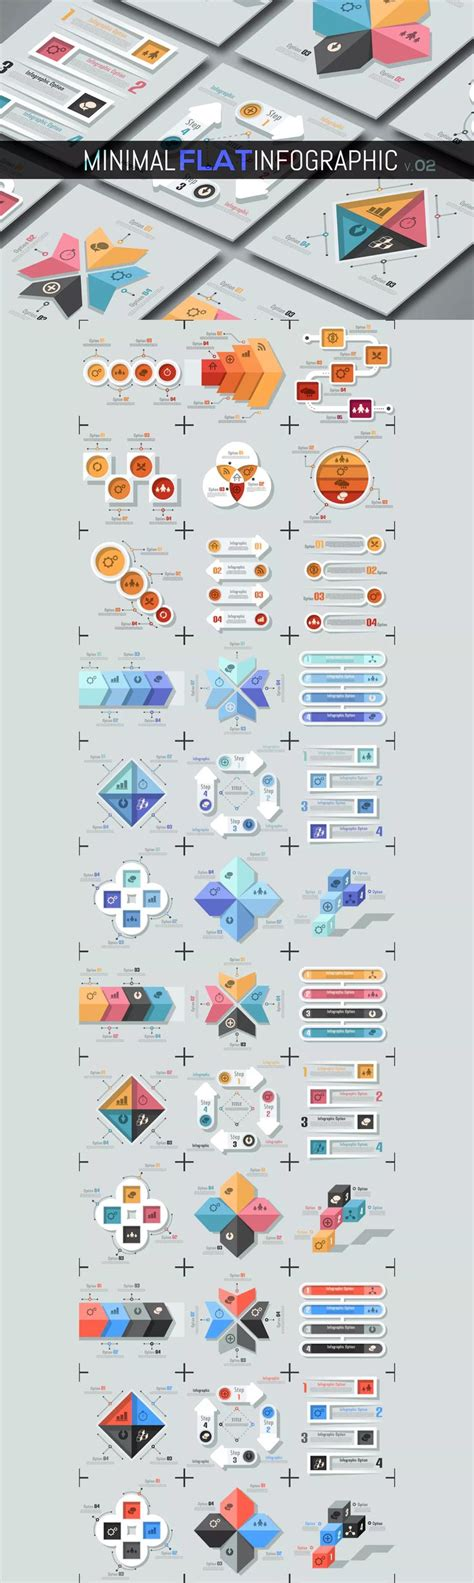 infographic template illustrator 2273 best images about best infographic templates on infographic tools illustrator